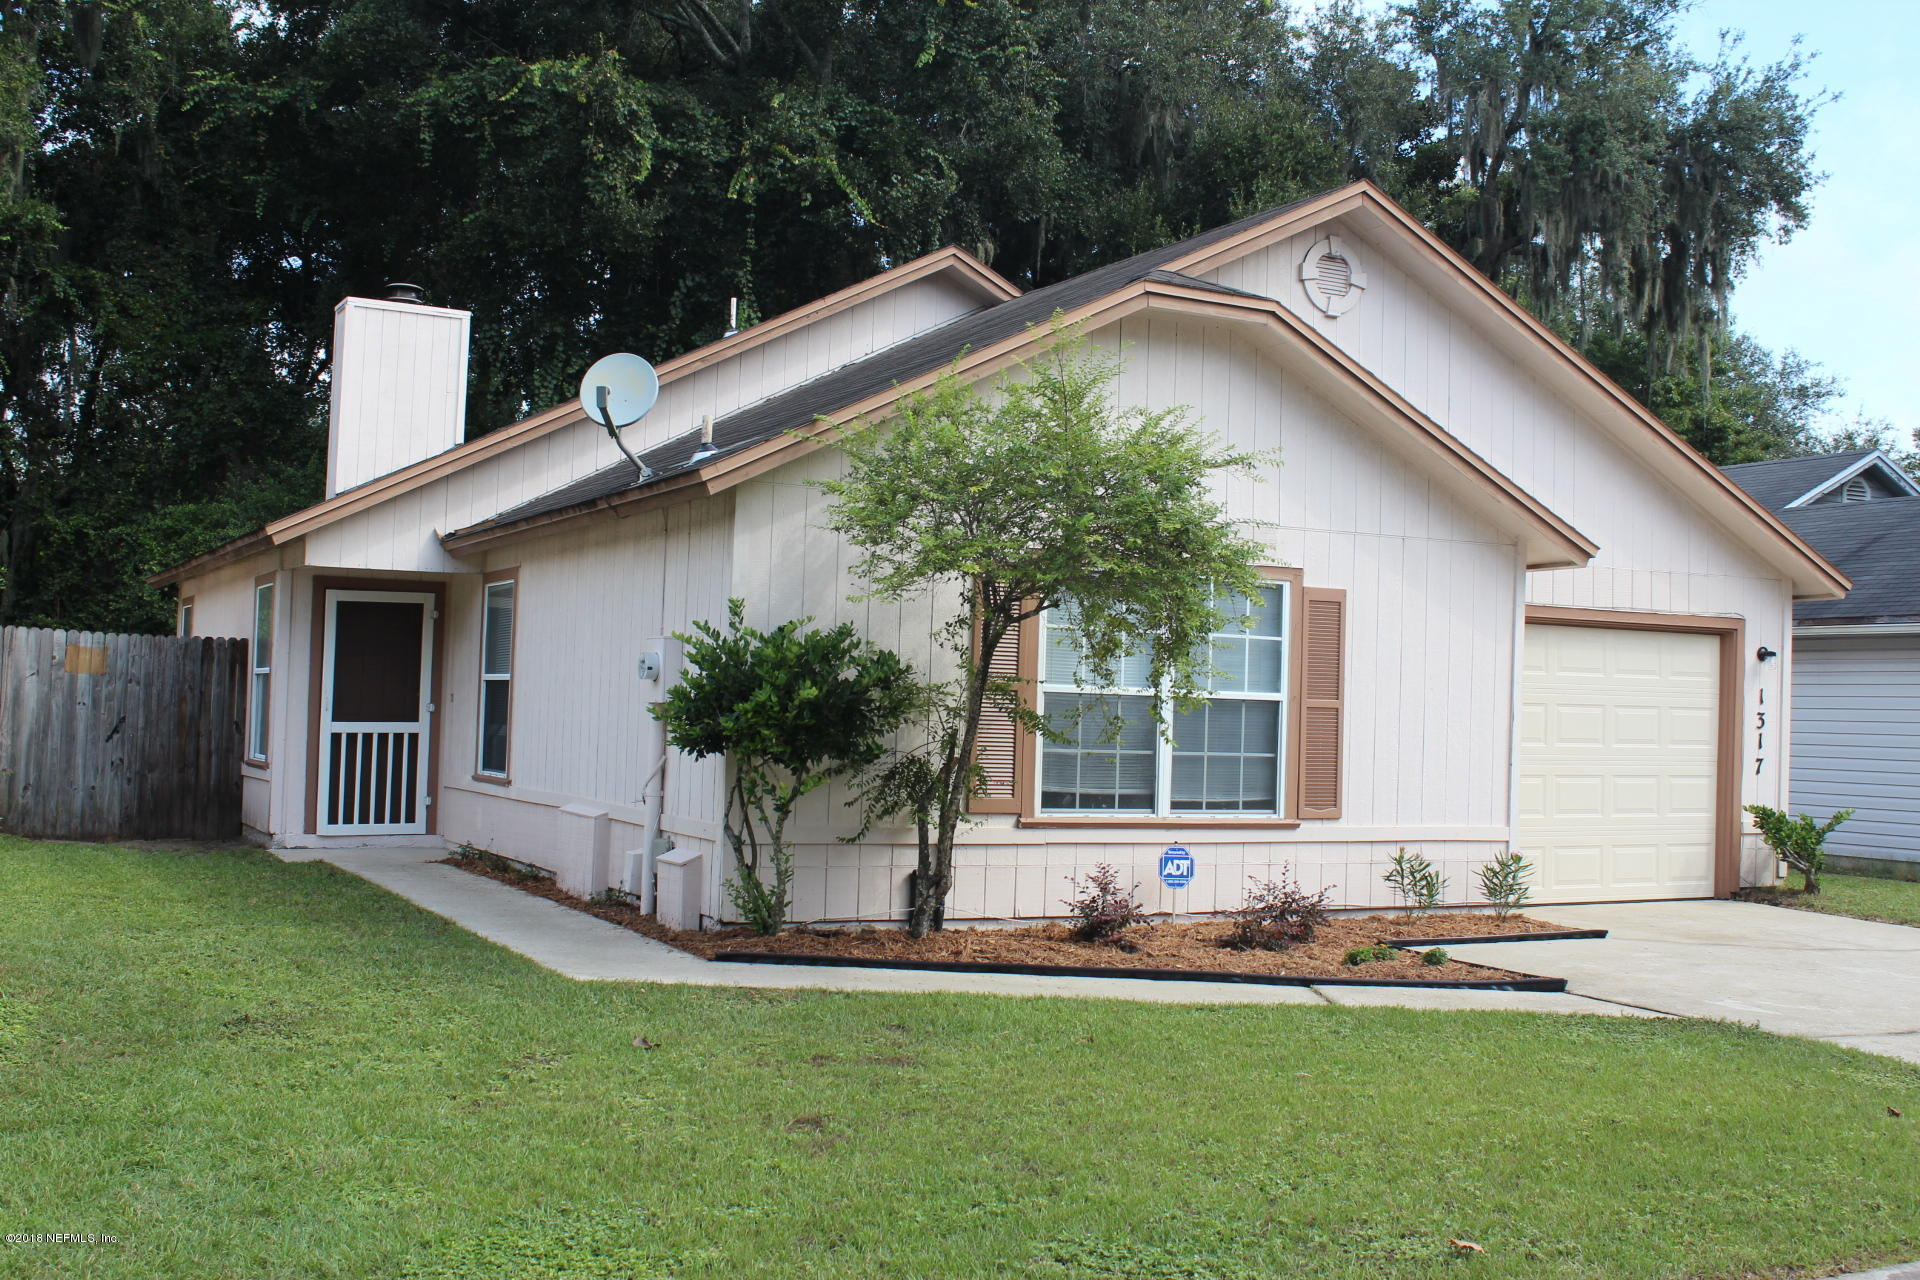 1317 MUNSON COVE, JACKSONVILLE, FLORIDA 32233, 3 Bedrooms Bedrooms, ,2 BathroomsBathrooms,Residential - single family,For sale,MUNSON COVE,961757